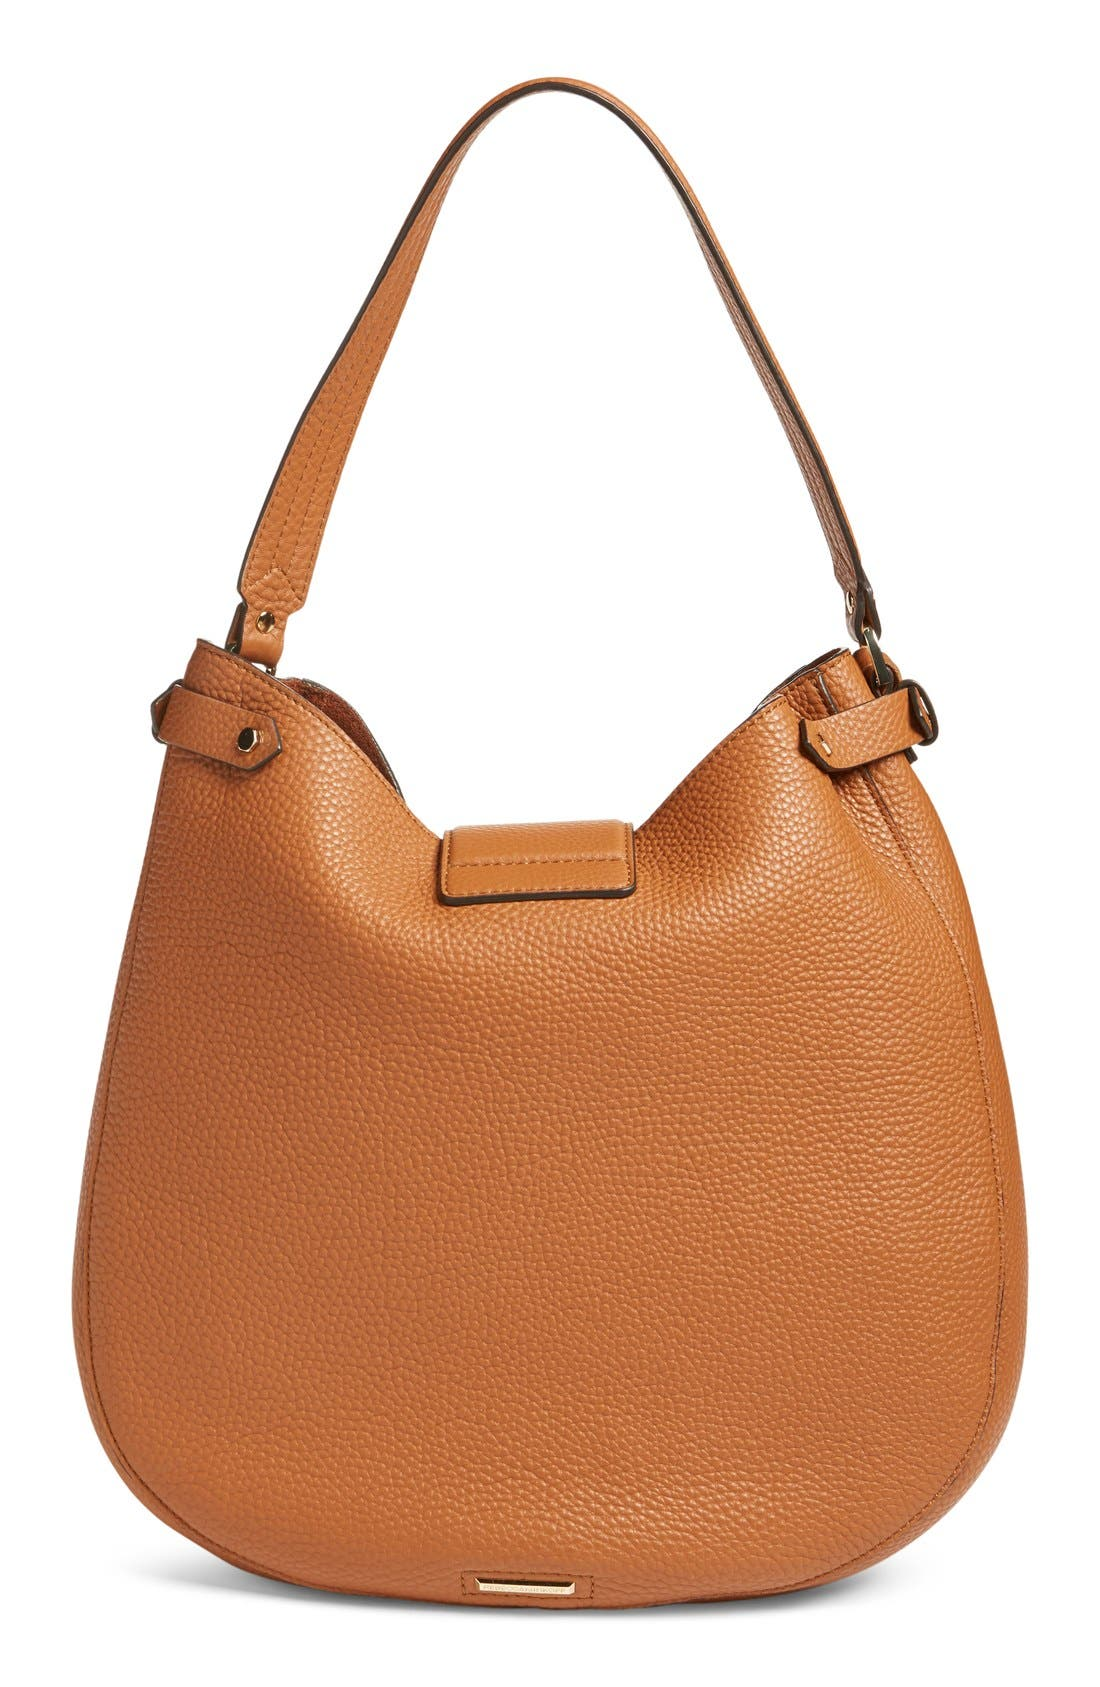 Alternate Image 3  - Rebecca Minkoff 'Darren' Leather Hobo Bag